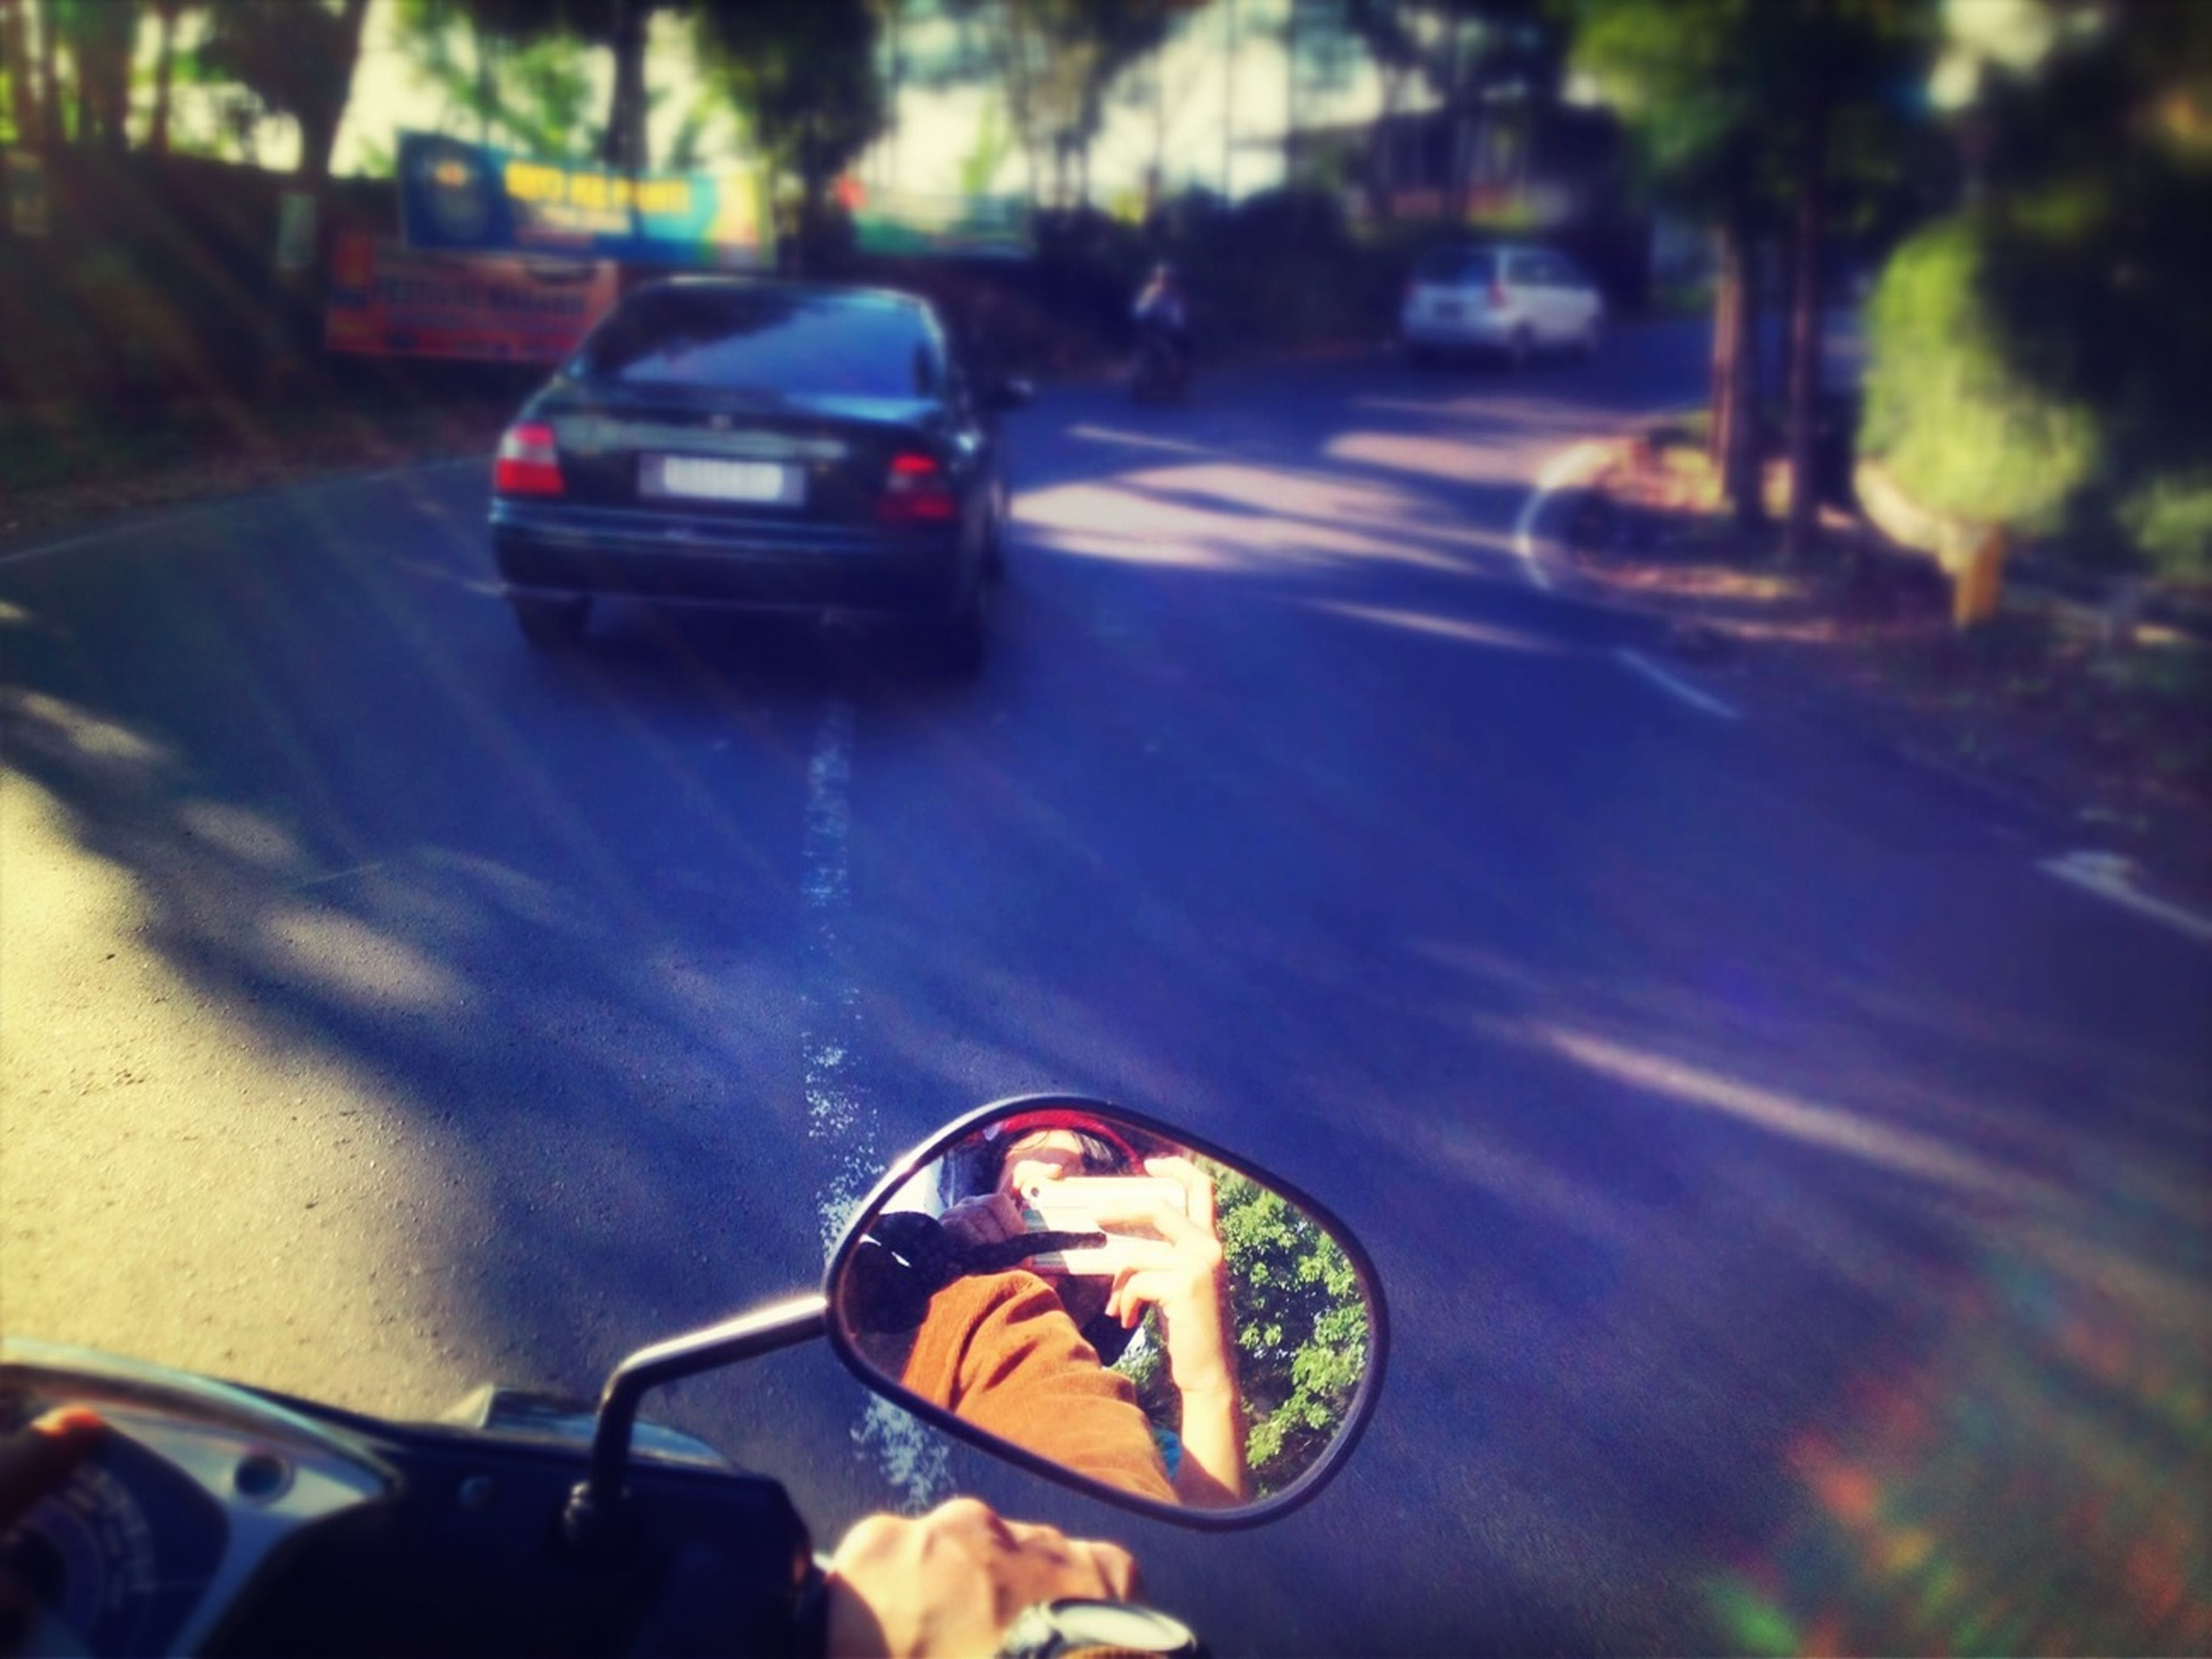 transportation, mode of transport, land vehicle, car, street, stationary, bicycle, travel, road, parking, on the move, parked, reflection, motorcycle, side-view mirror, part of, outdoors, sunlight, headlight, tree